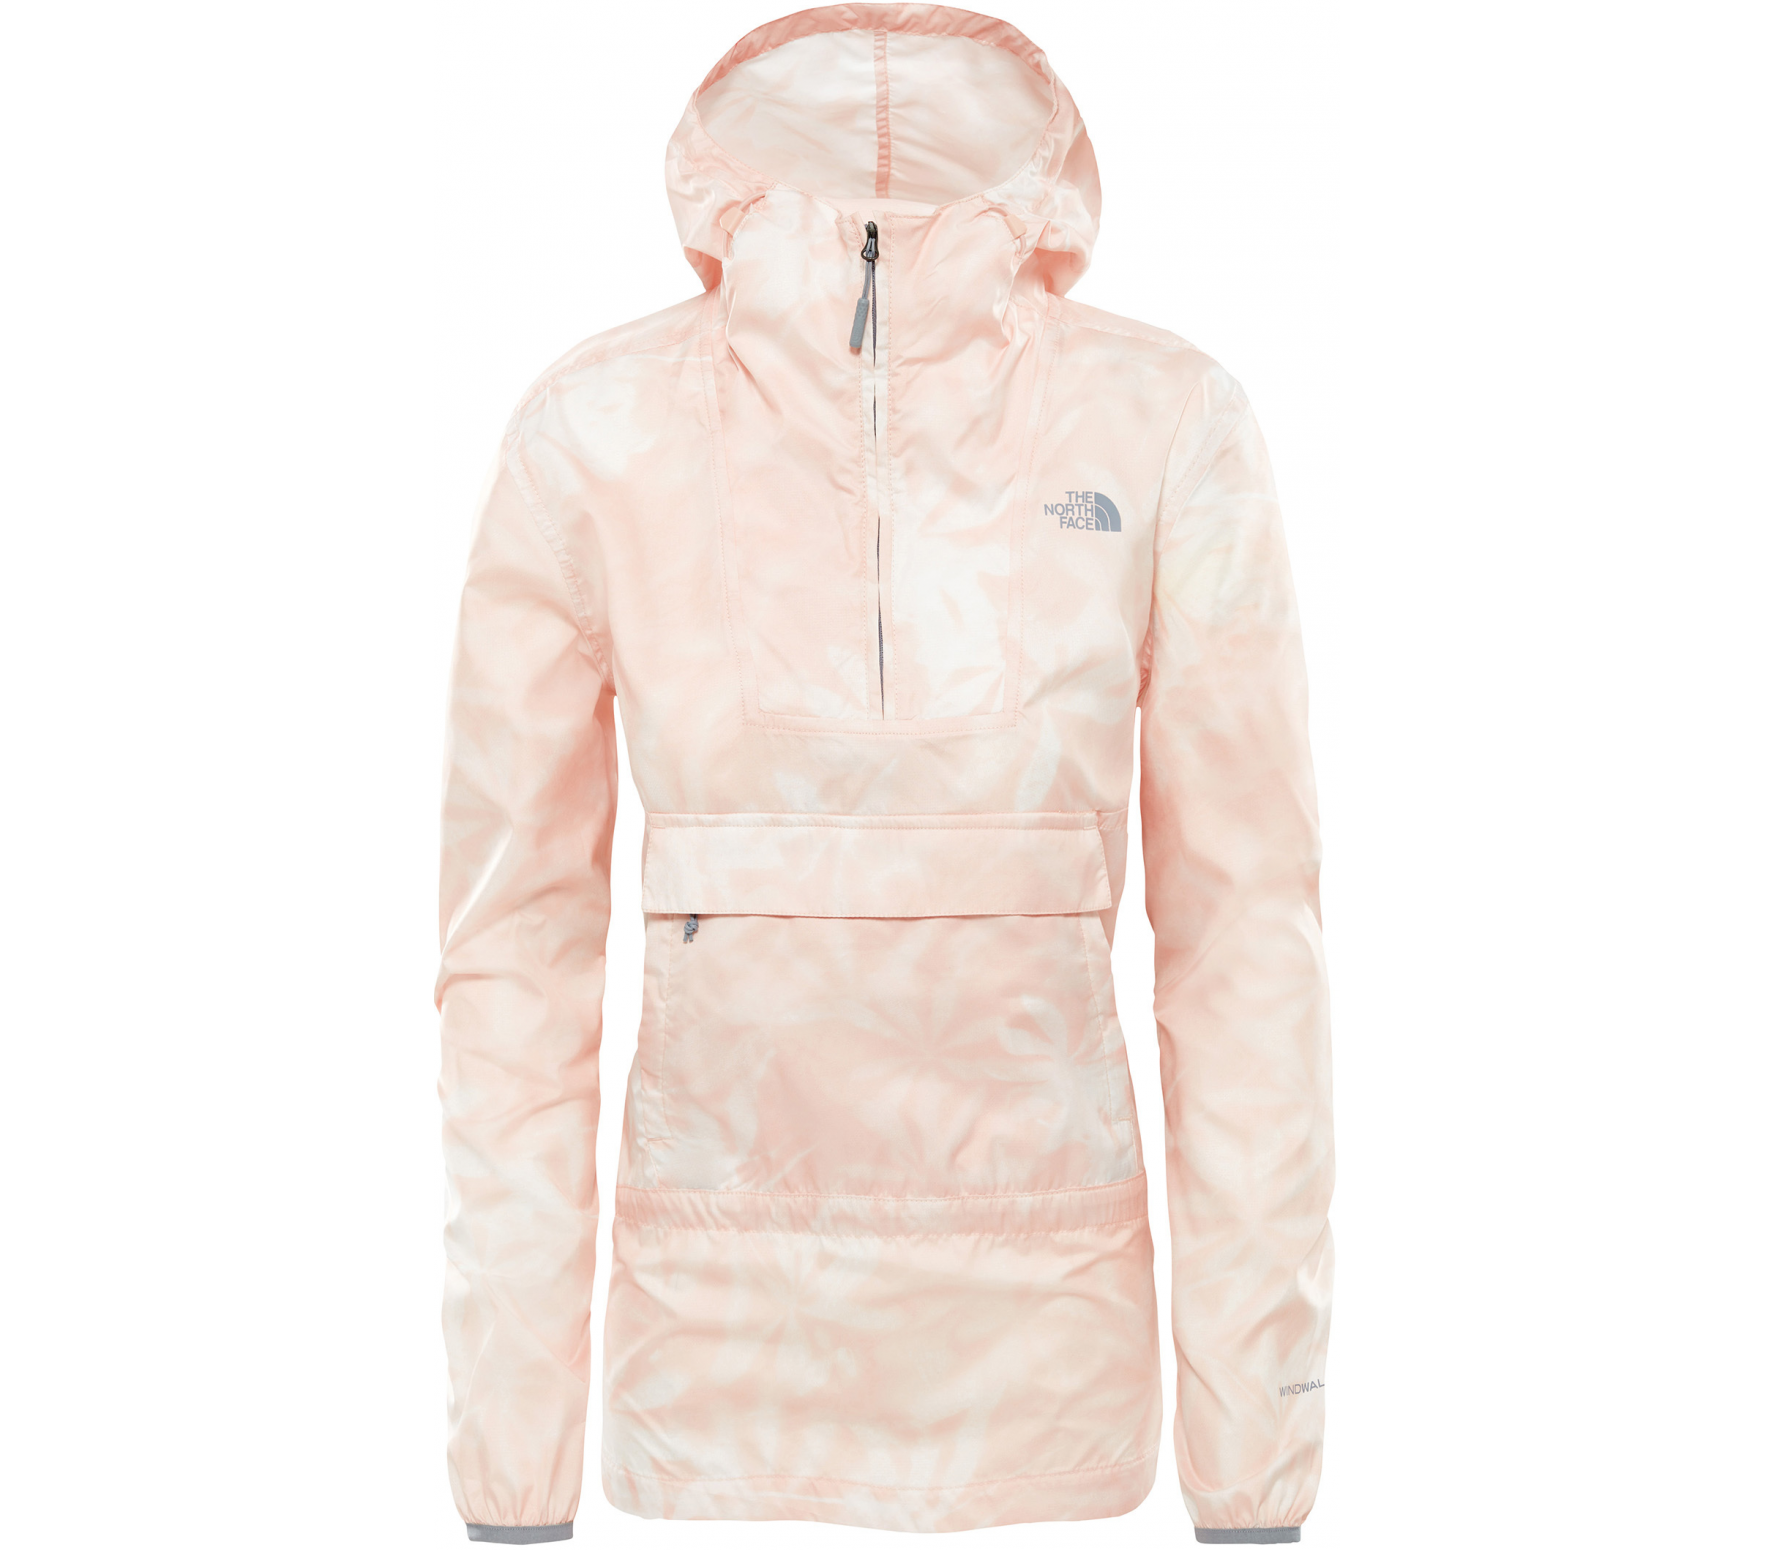 88c4964c66 The North Face - Fanorak veste coupe-vent pour femmes (corail ...